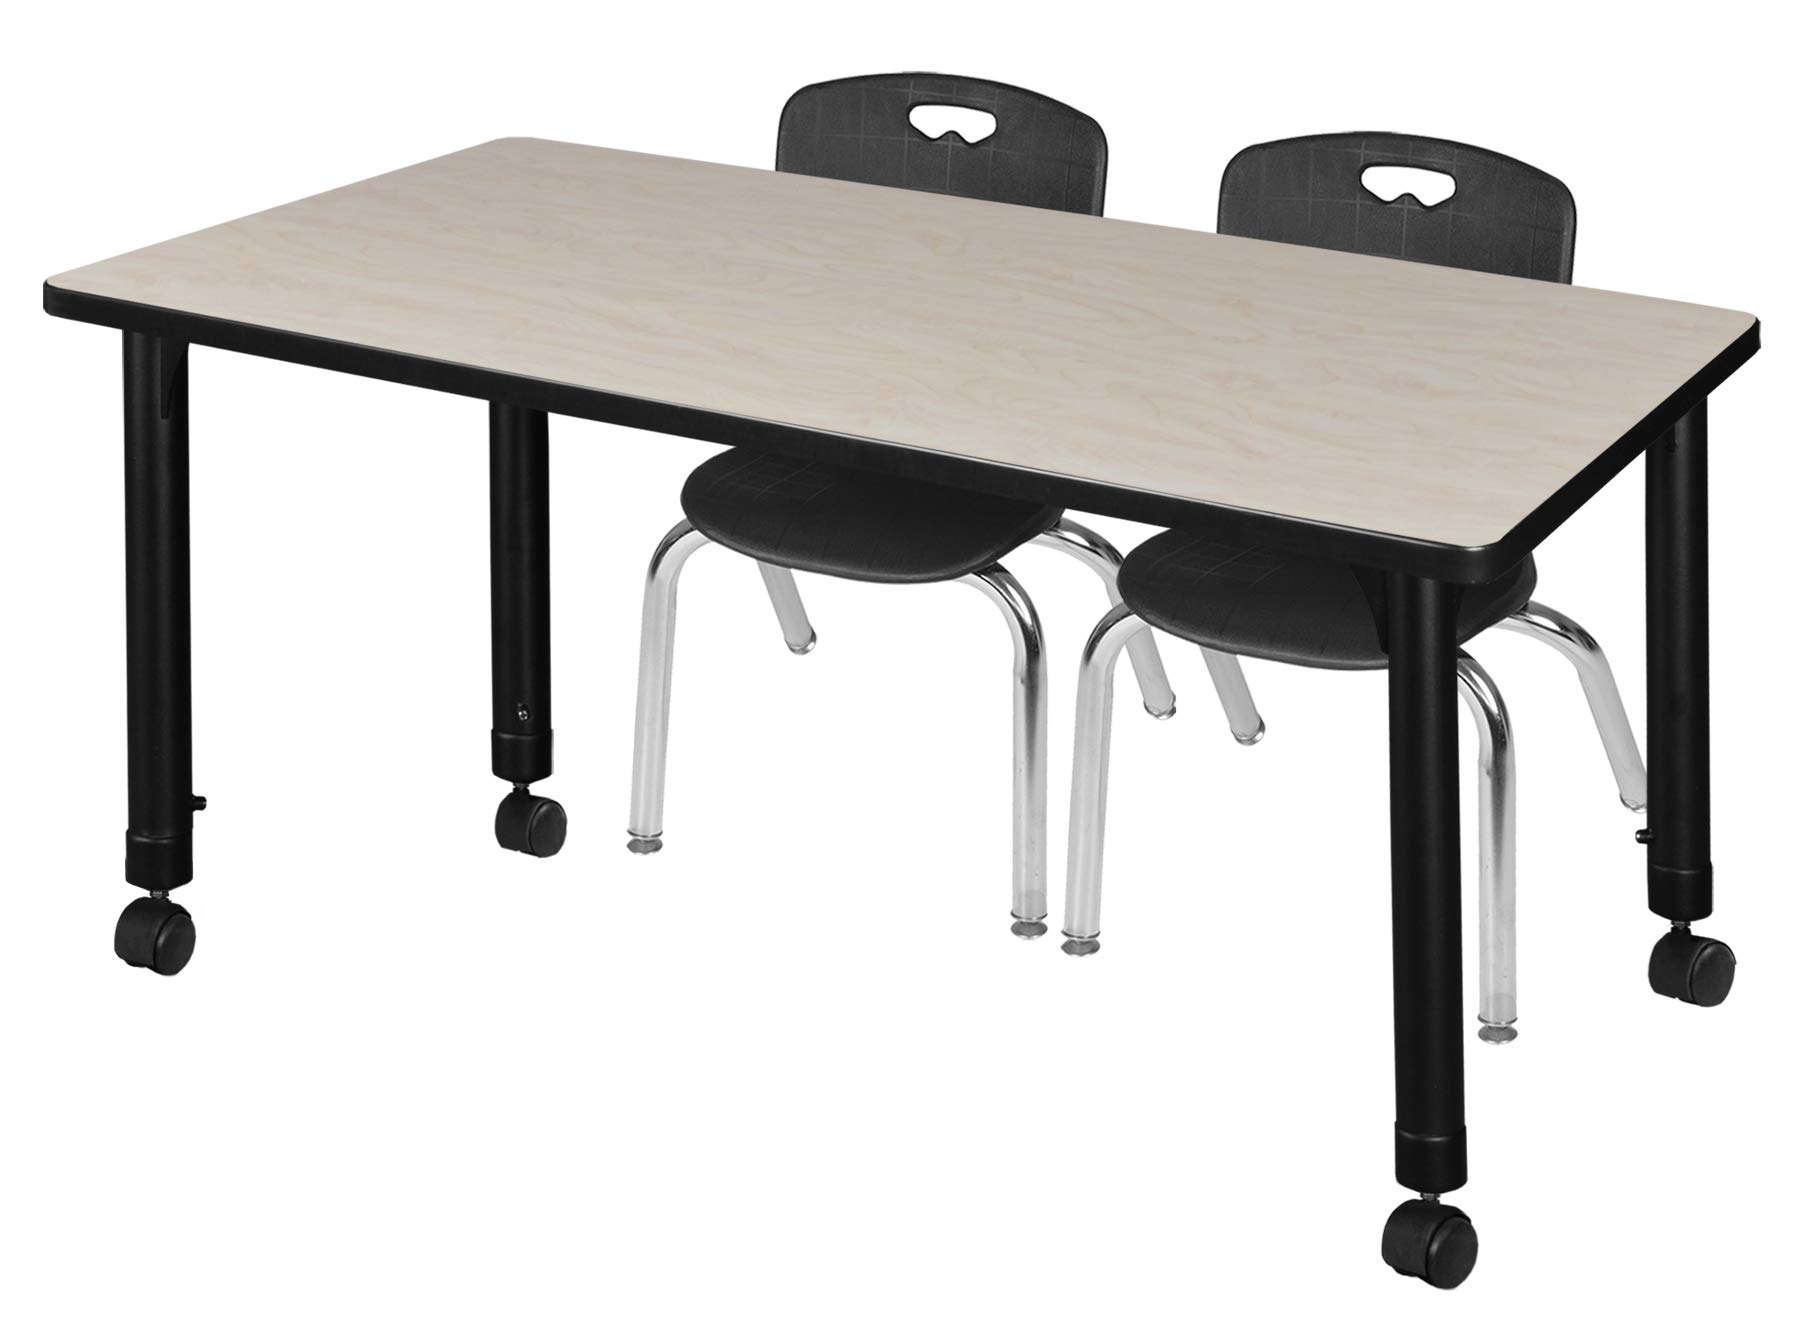 Regency MT4830PLAPCBK45BK Kee Height Adjustable Mobile Classroom Table Set with Two 12'' Andy Chairs, 48'' x 30'', Maple/Black by Regency